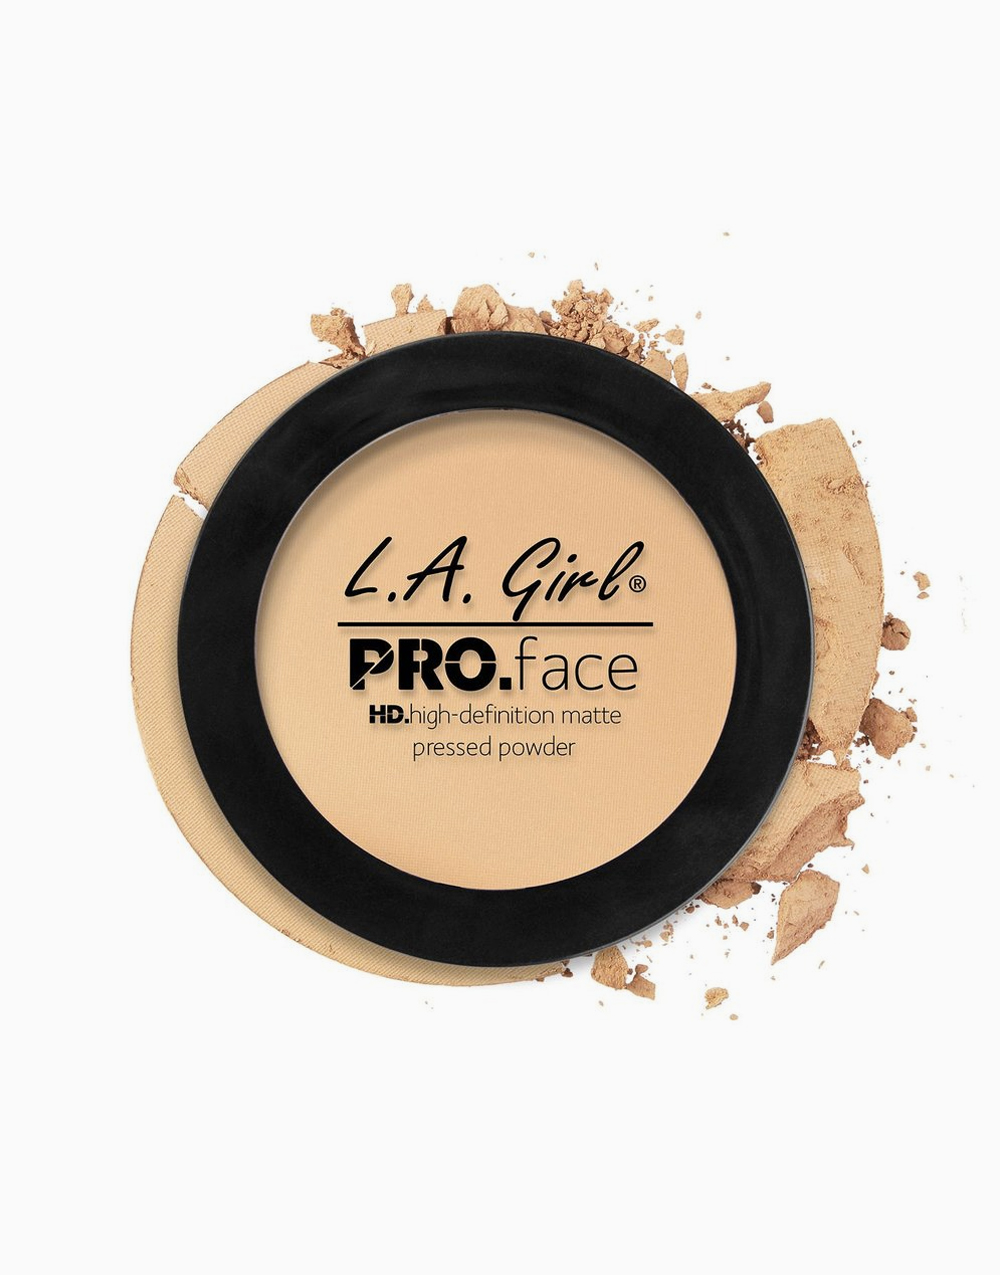 PRO Face Pressed Powder by L.A. Girl | Creamy Natural